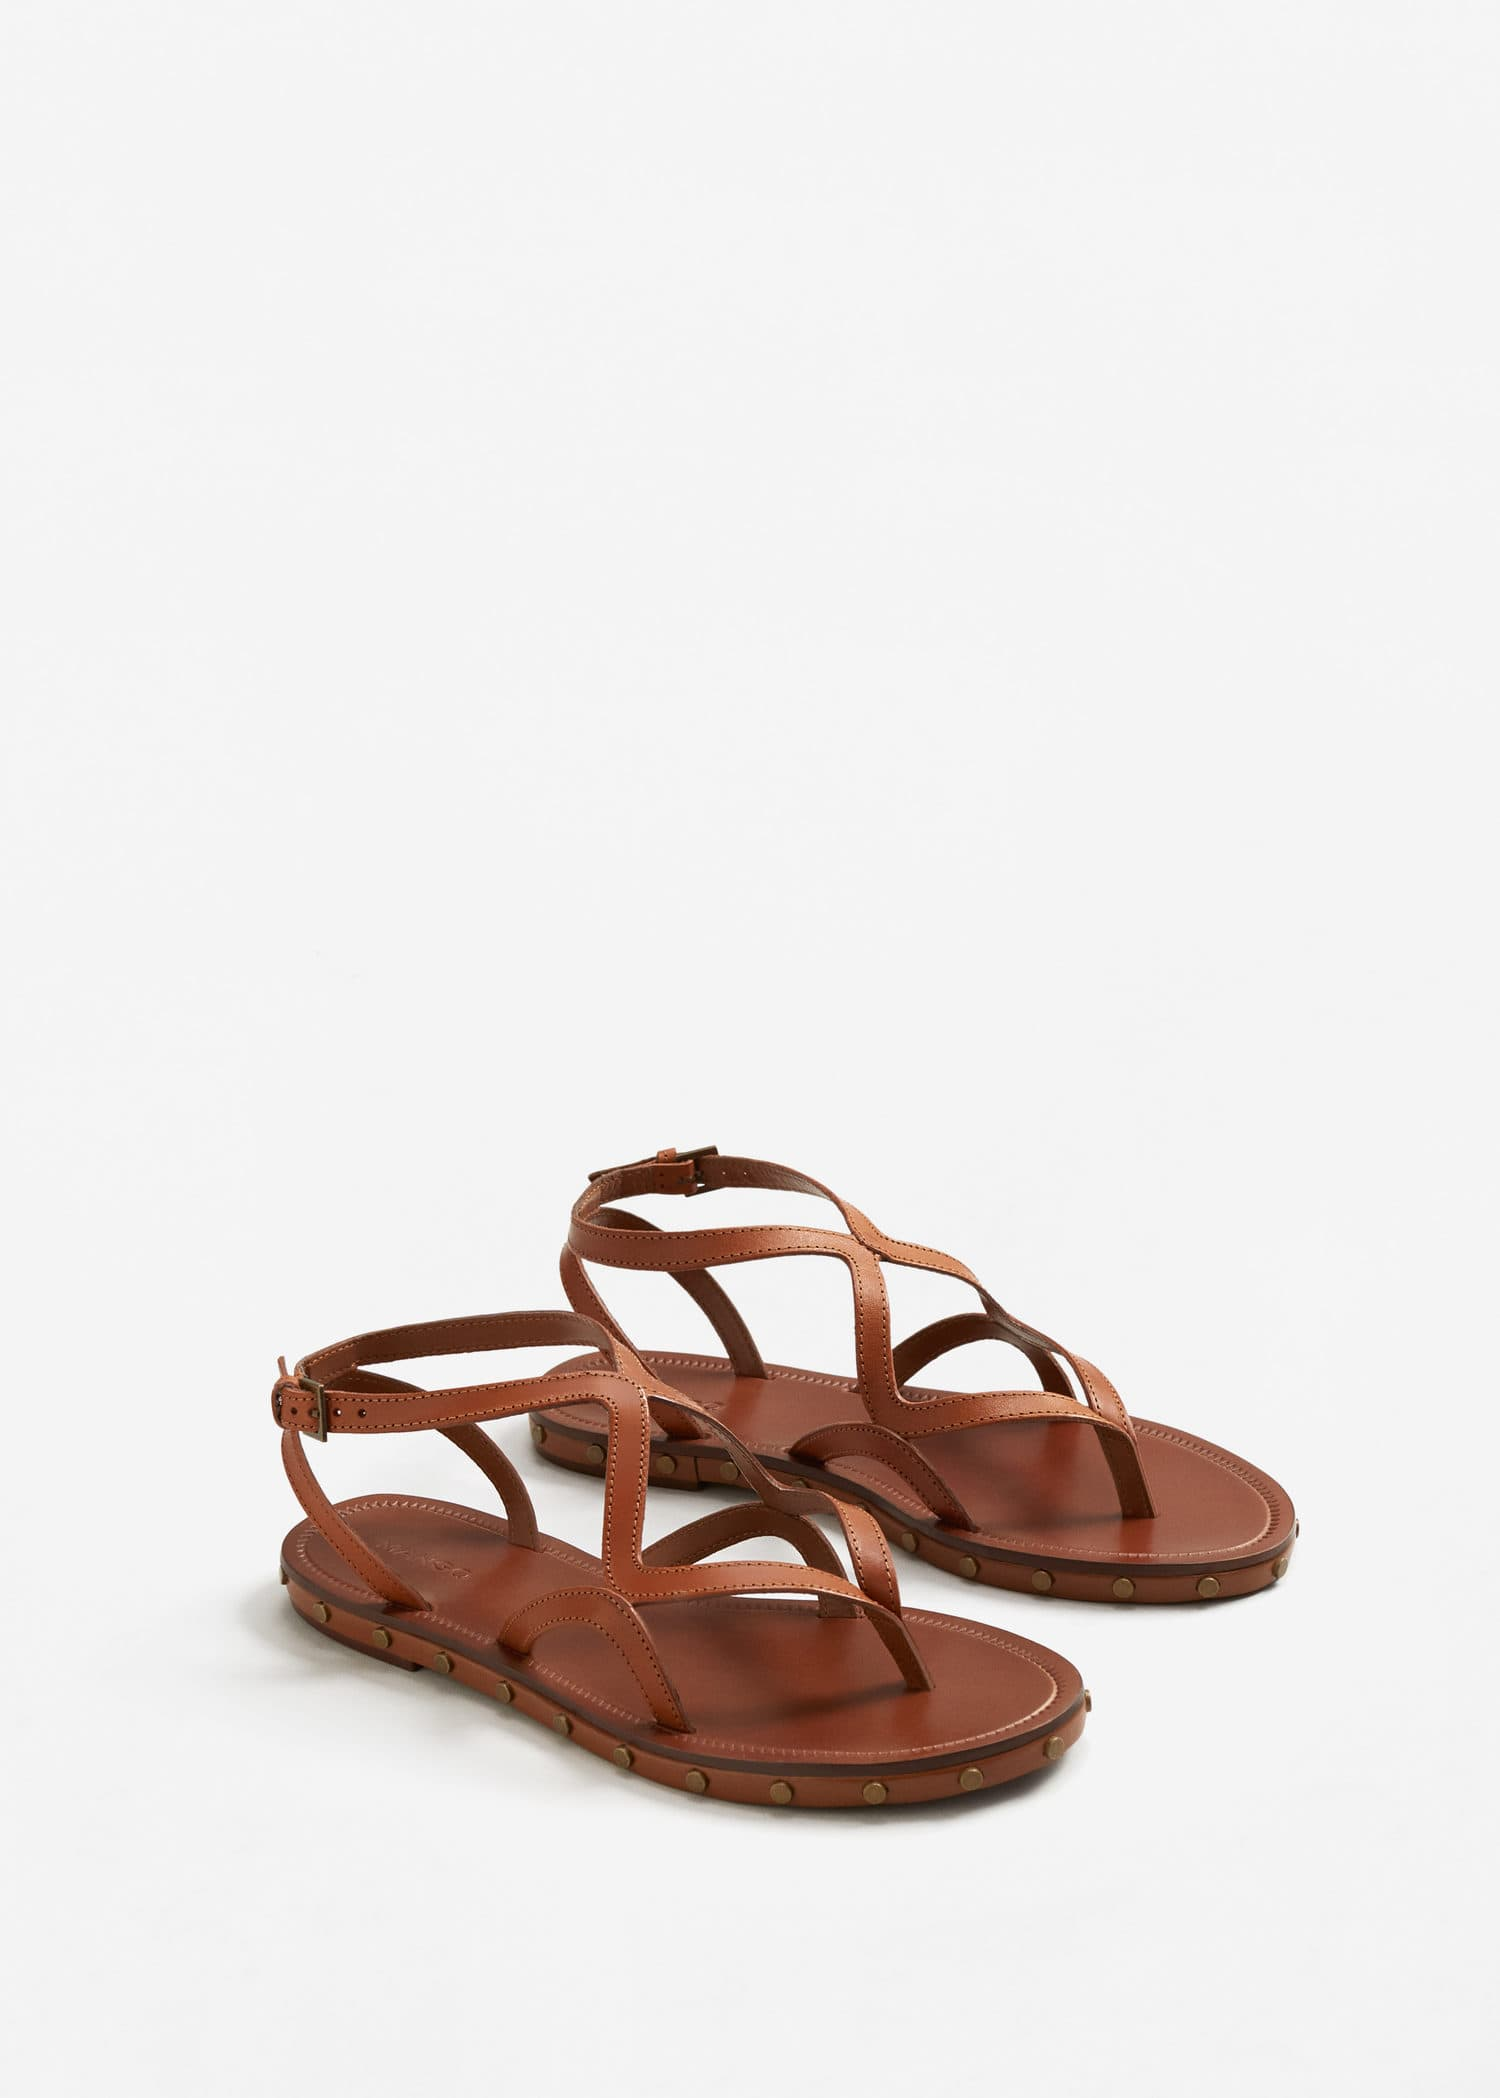 Sandals WomanMango Straps Straps Leather Sandals WomanMango Jordan Leather Jordan Leather bfI7yvm6gY